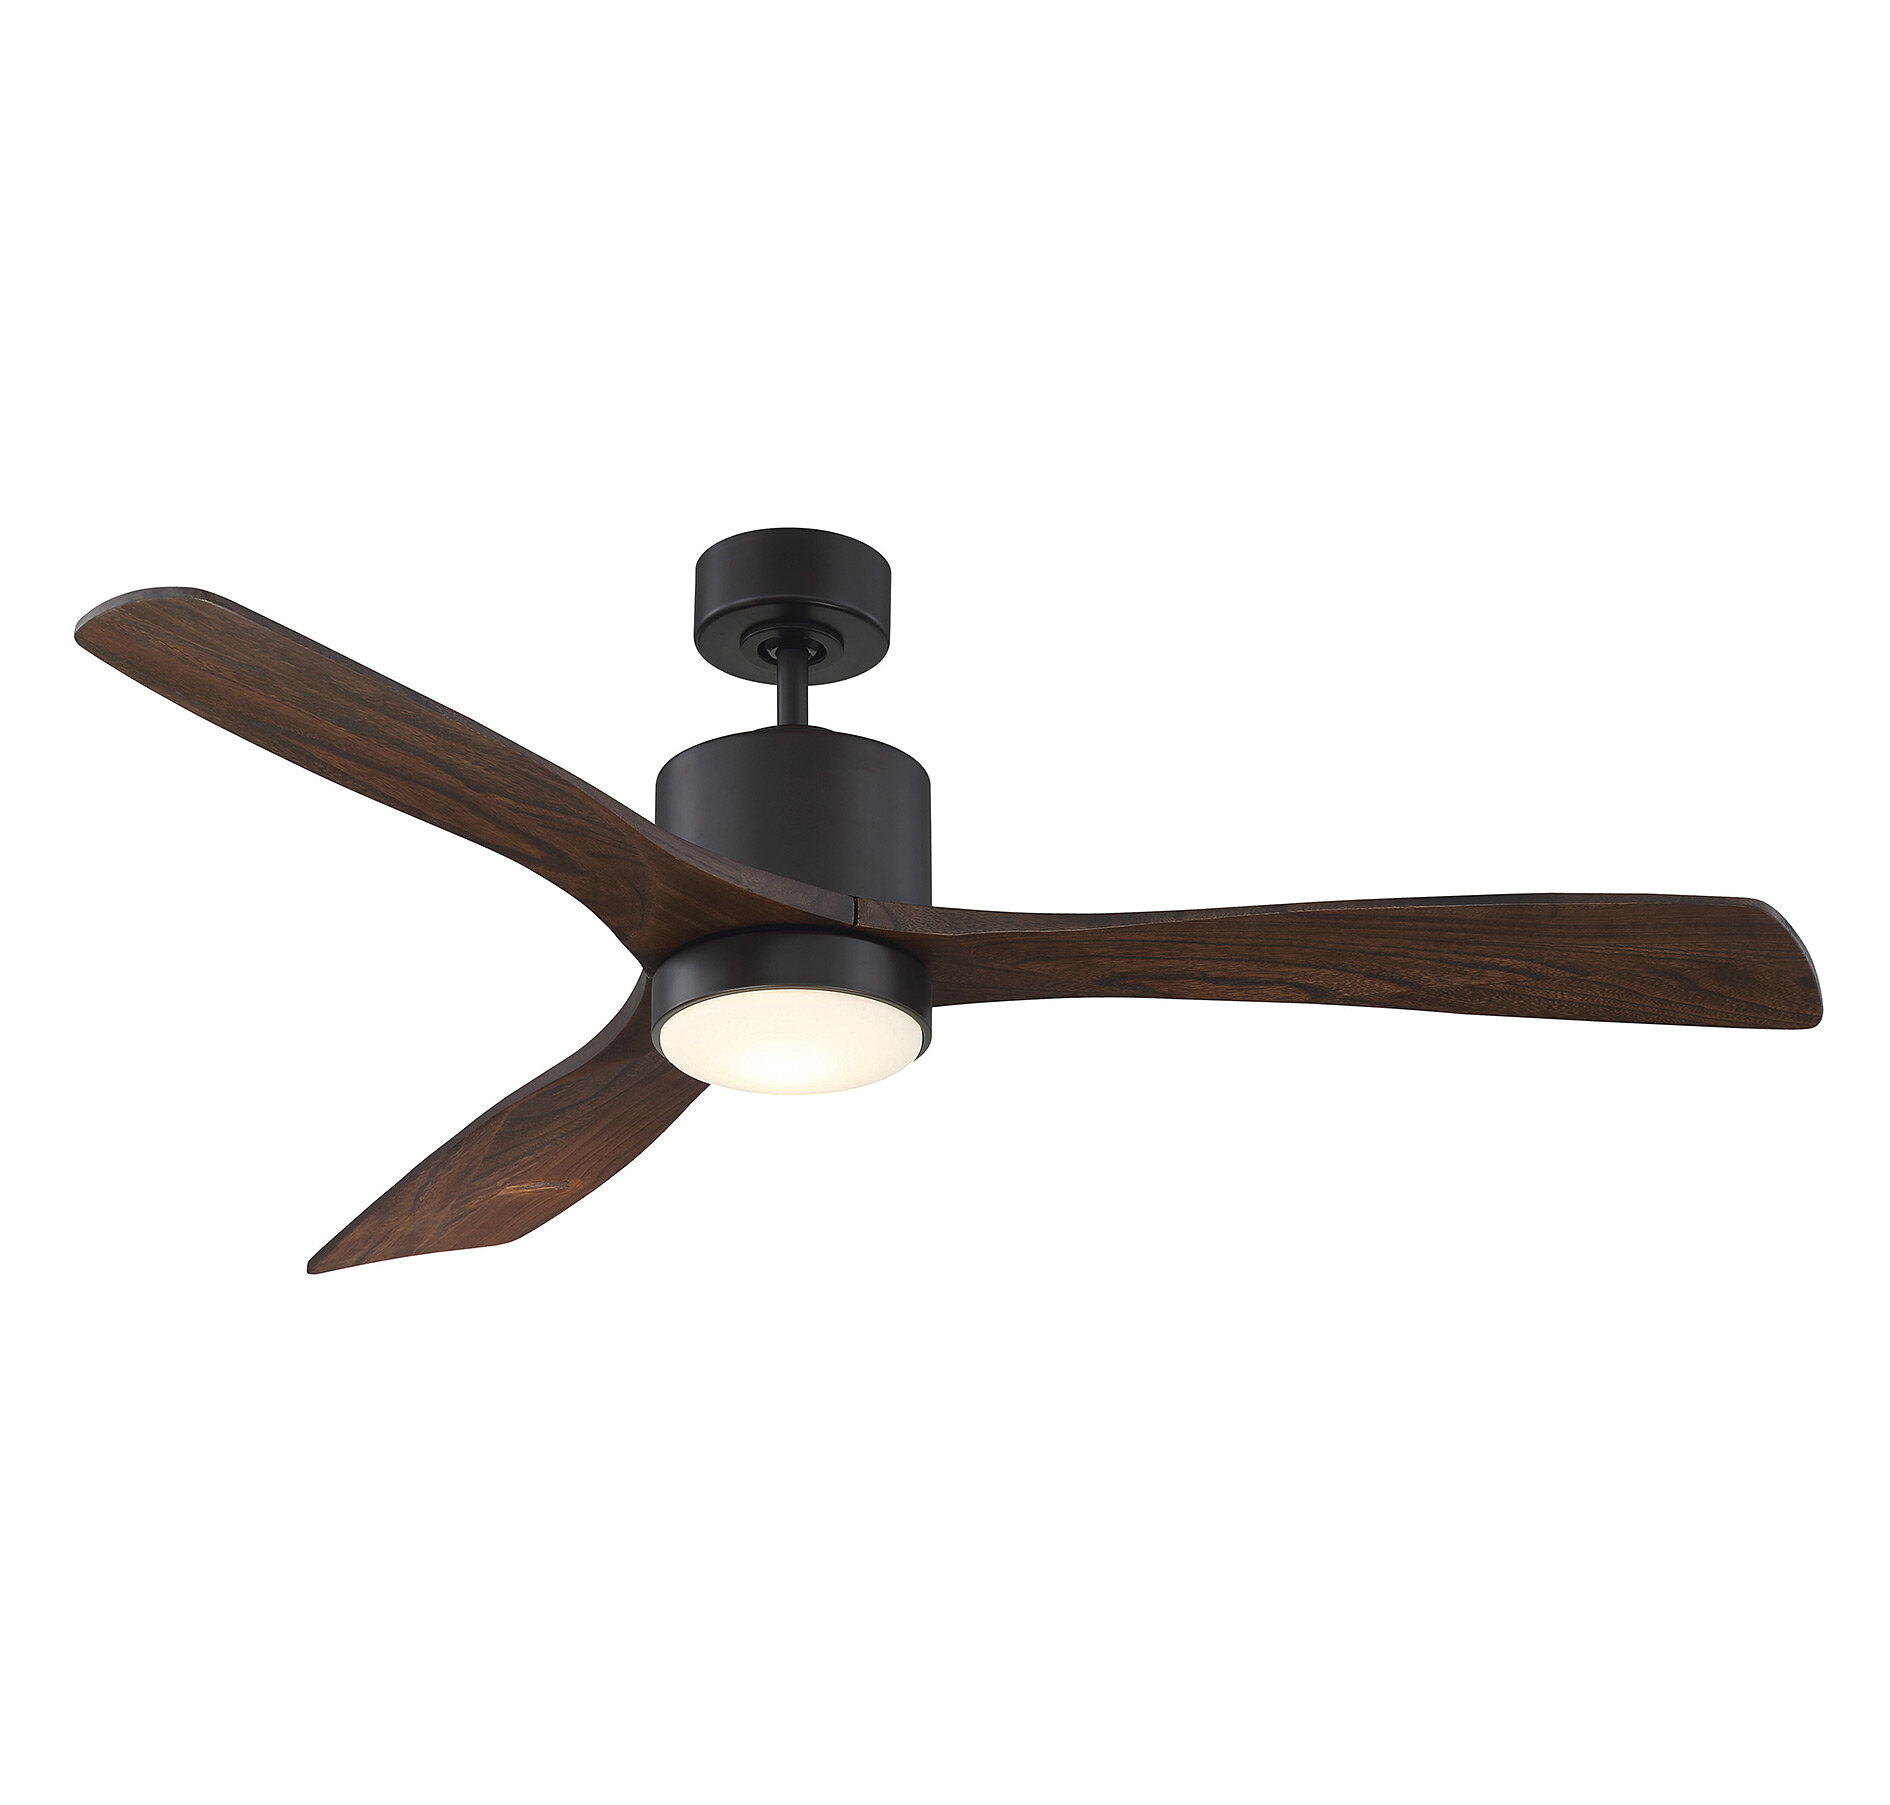 ceilingfan nickel minka bn aire click remote led concept alternative views fan htm p ceiling ii com